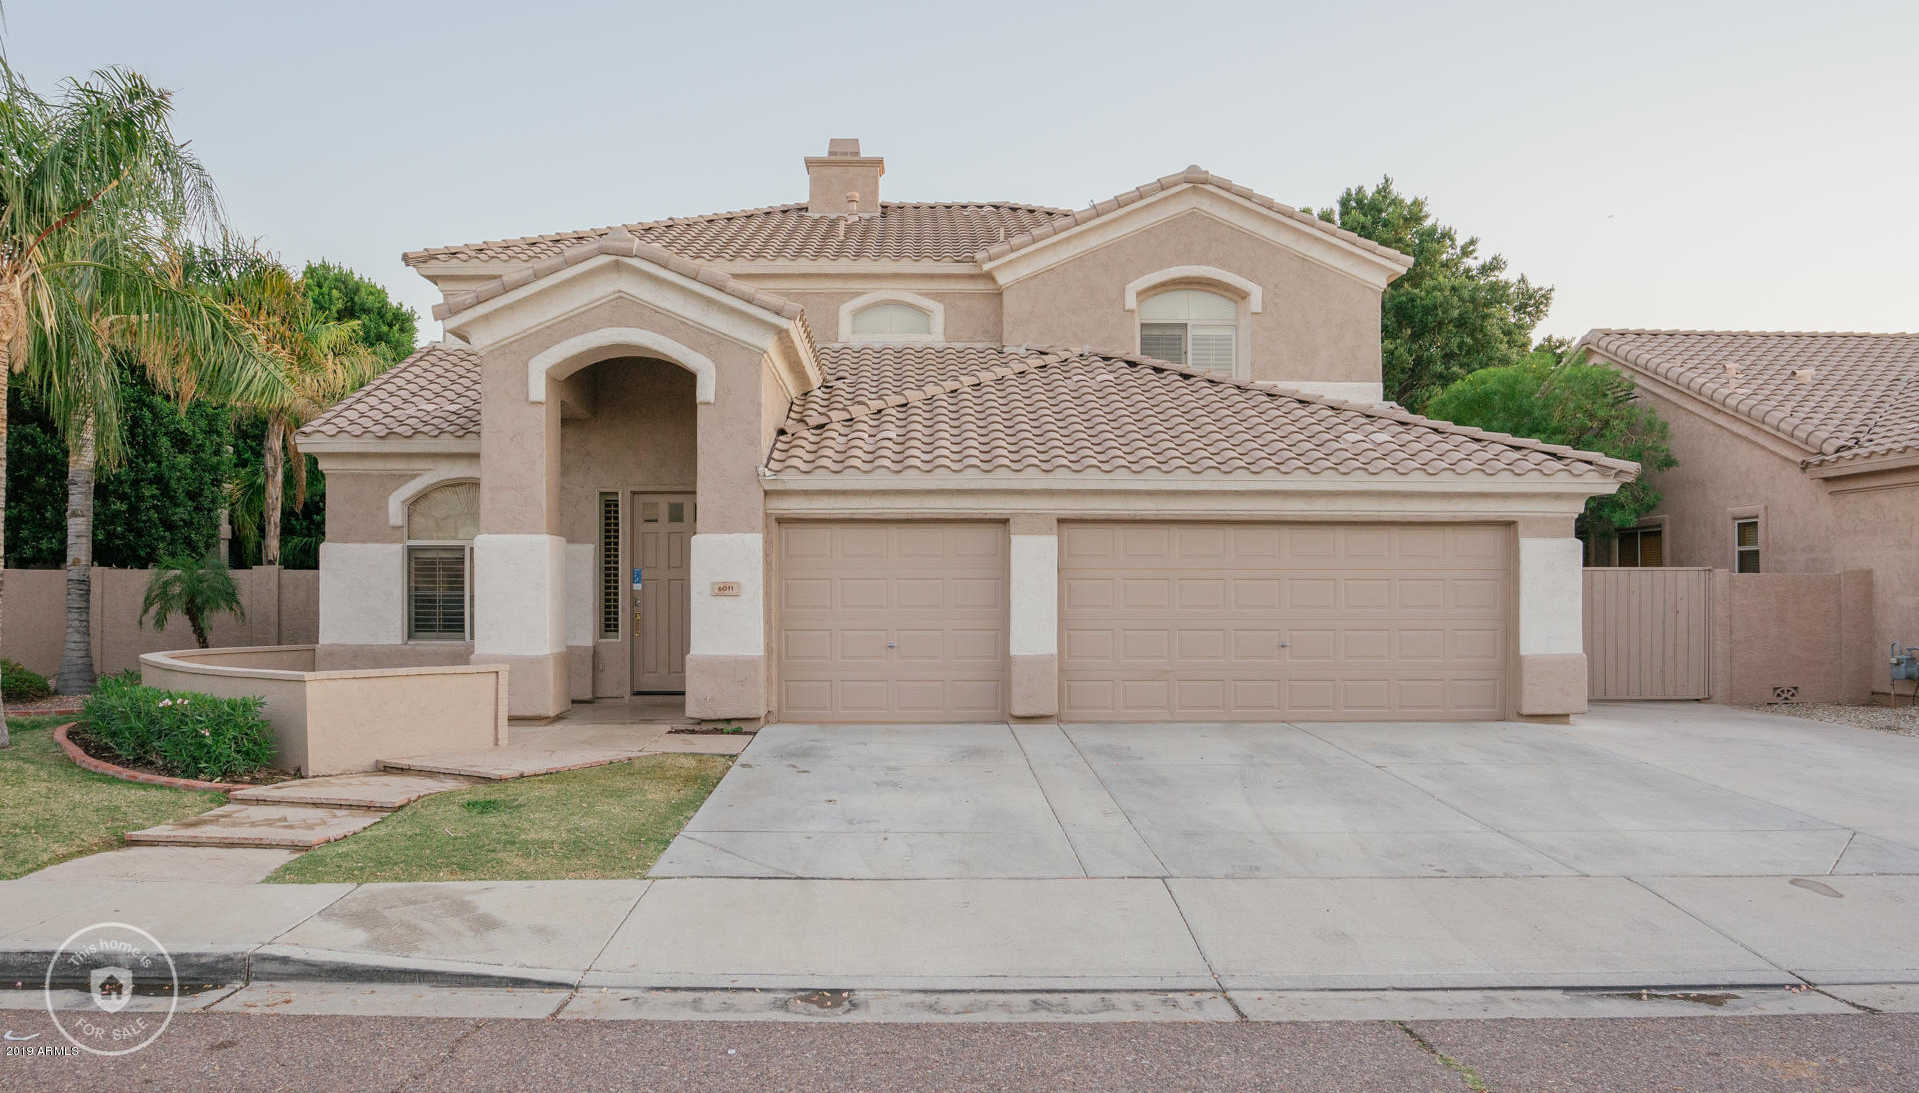 $450,000 - 5Br/4Ba - Home for Sale in Highlands At Arrowhead Ranch 3, Glendale